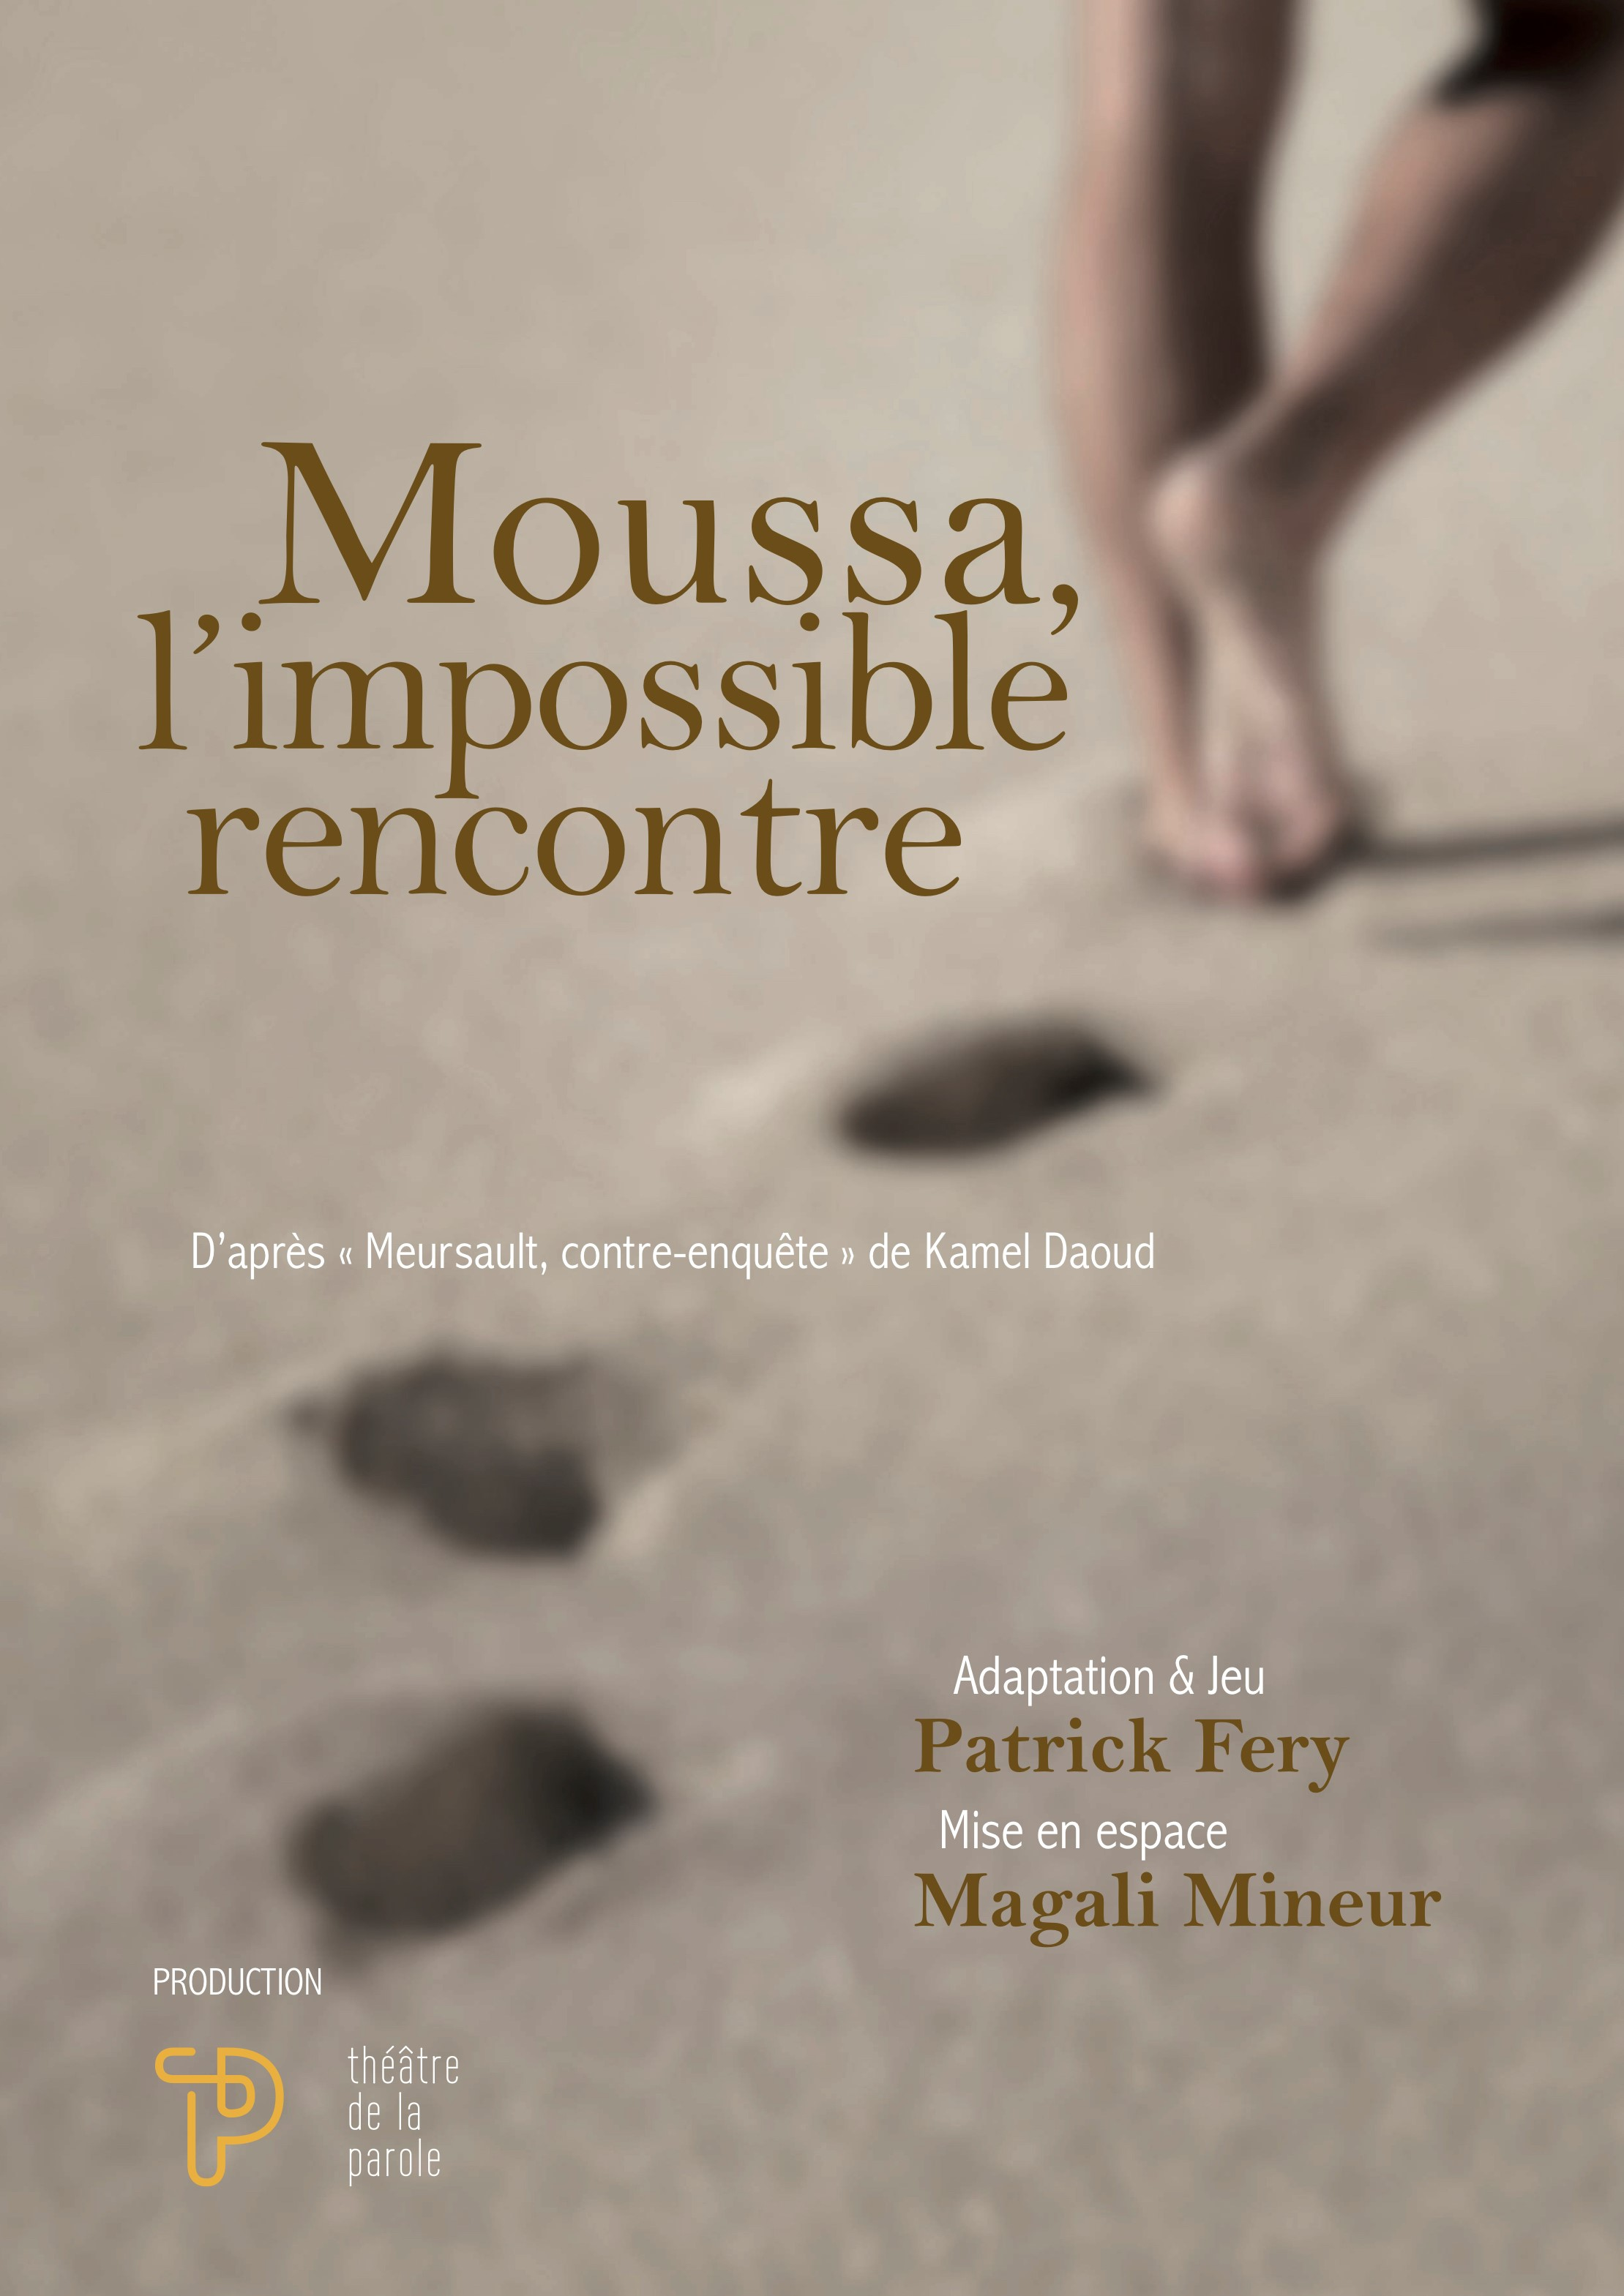 Moussa L'Impossible Rencontre illustration.jpg